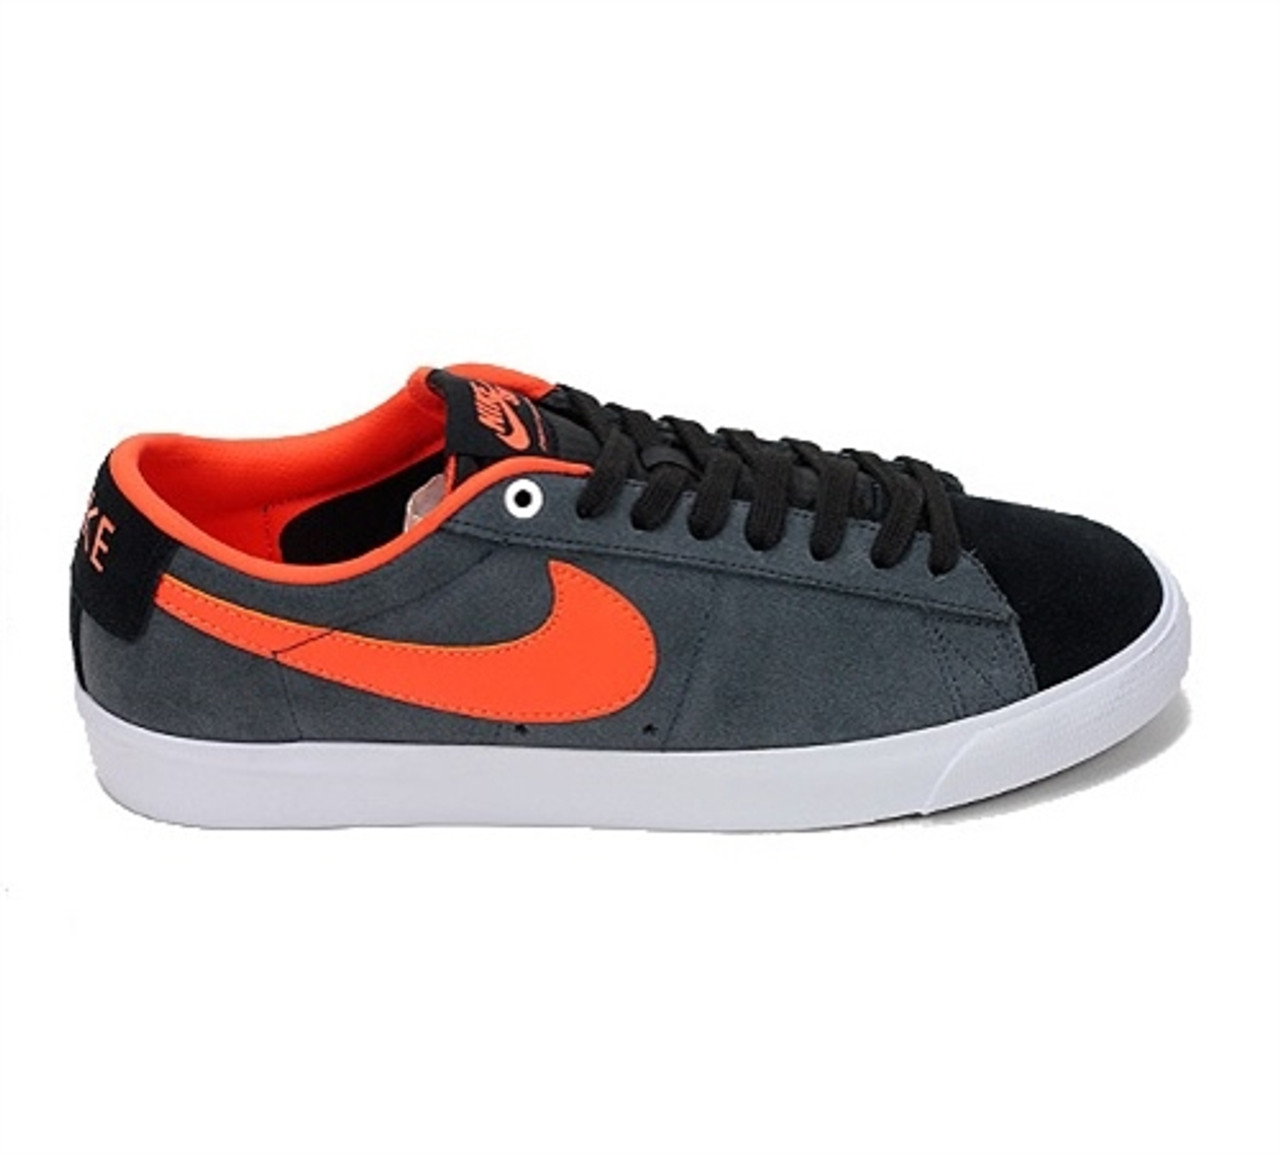 best service 0ae11 98f10 Nike SB Blazer Low Grant Taylor Skate Shoes Black Turf Orange